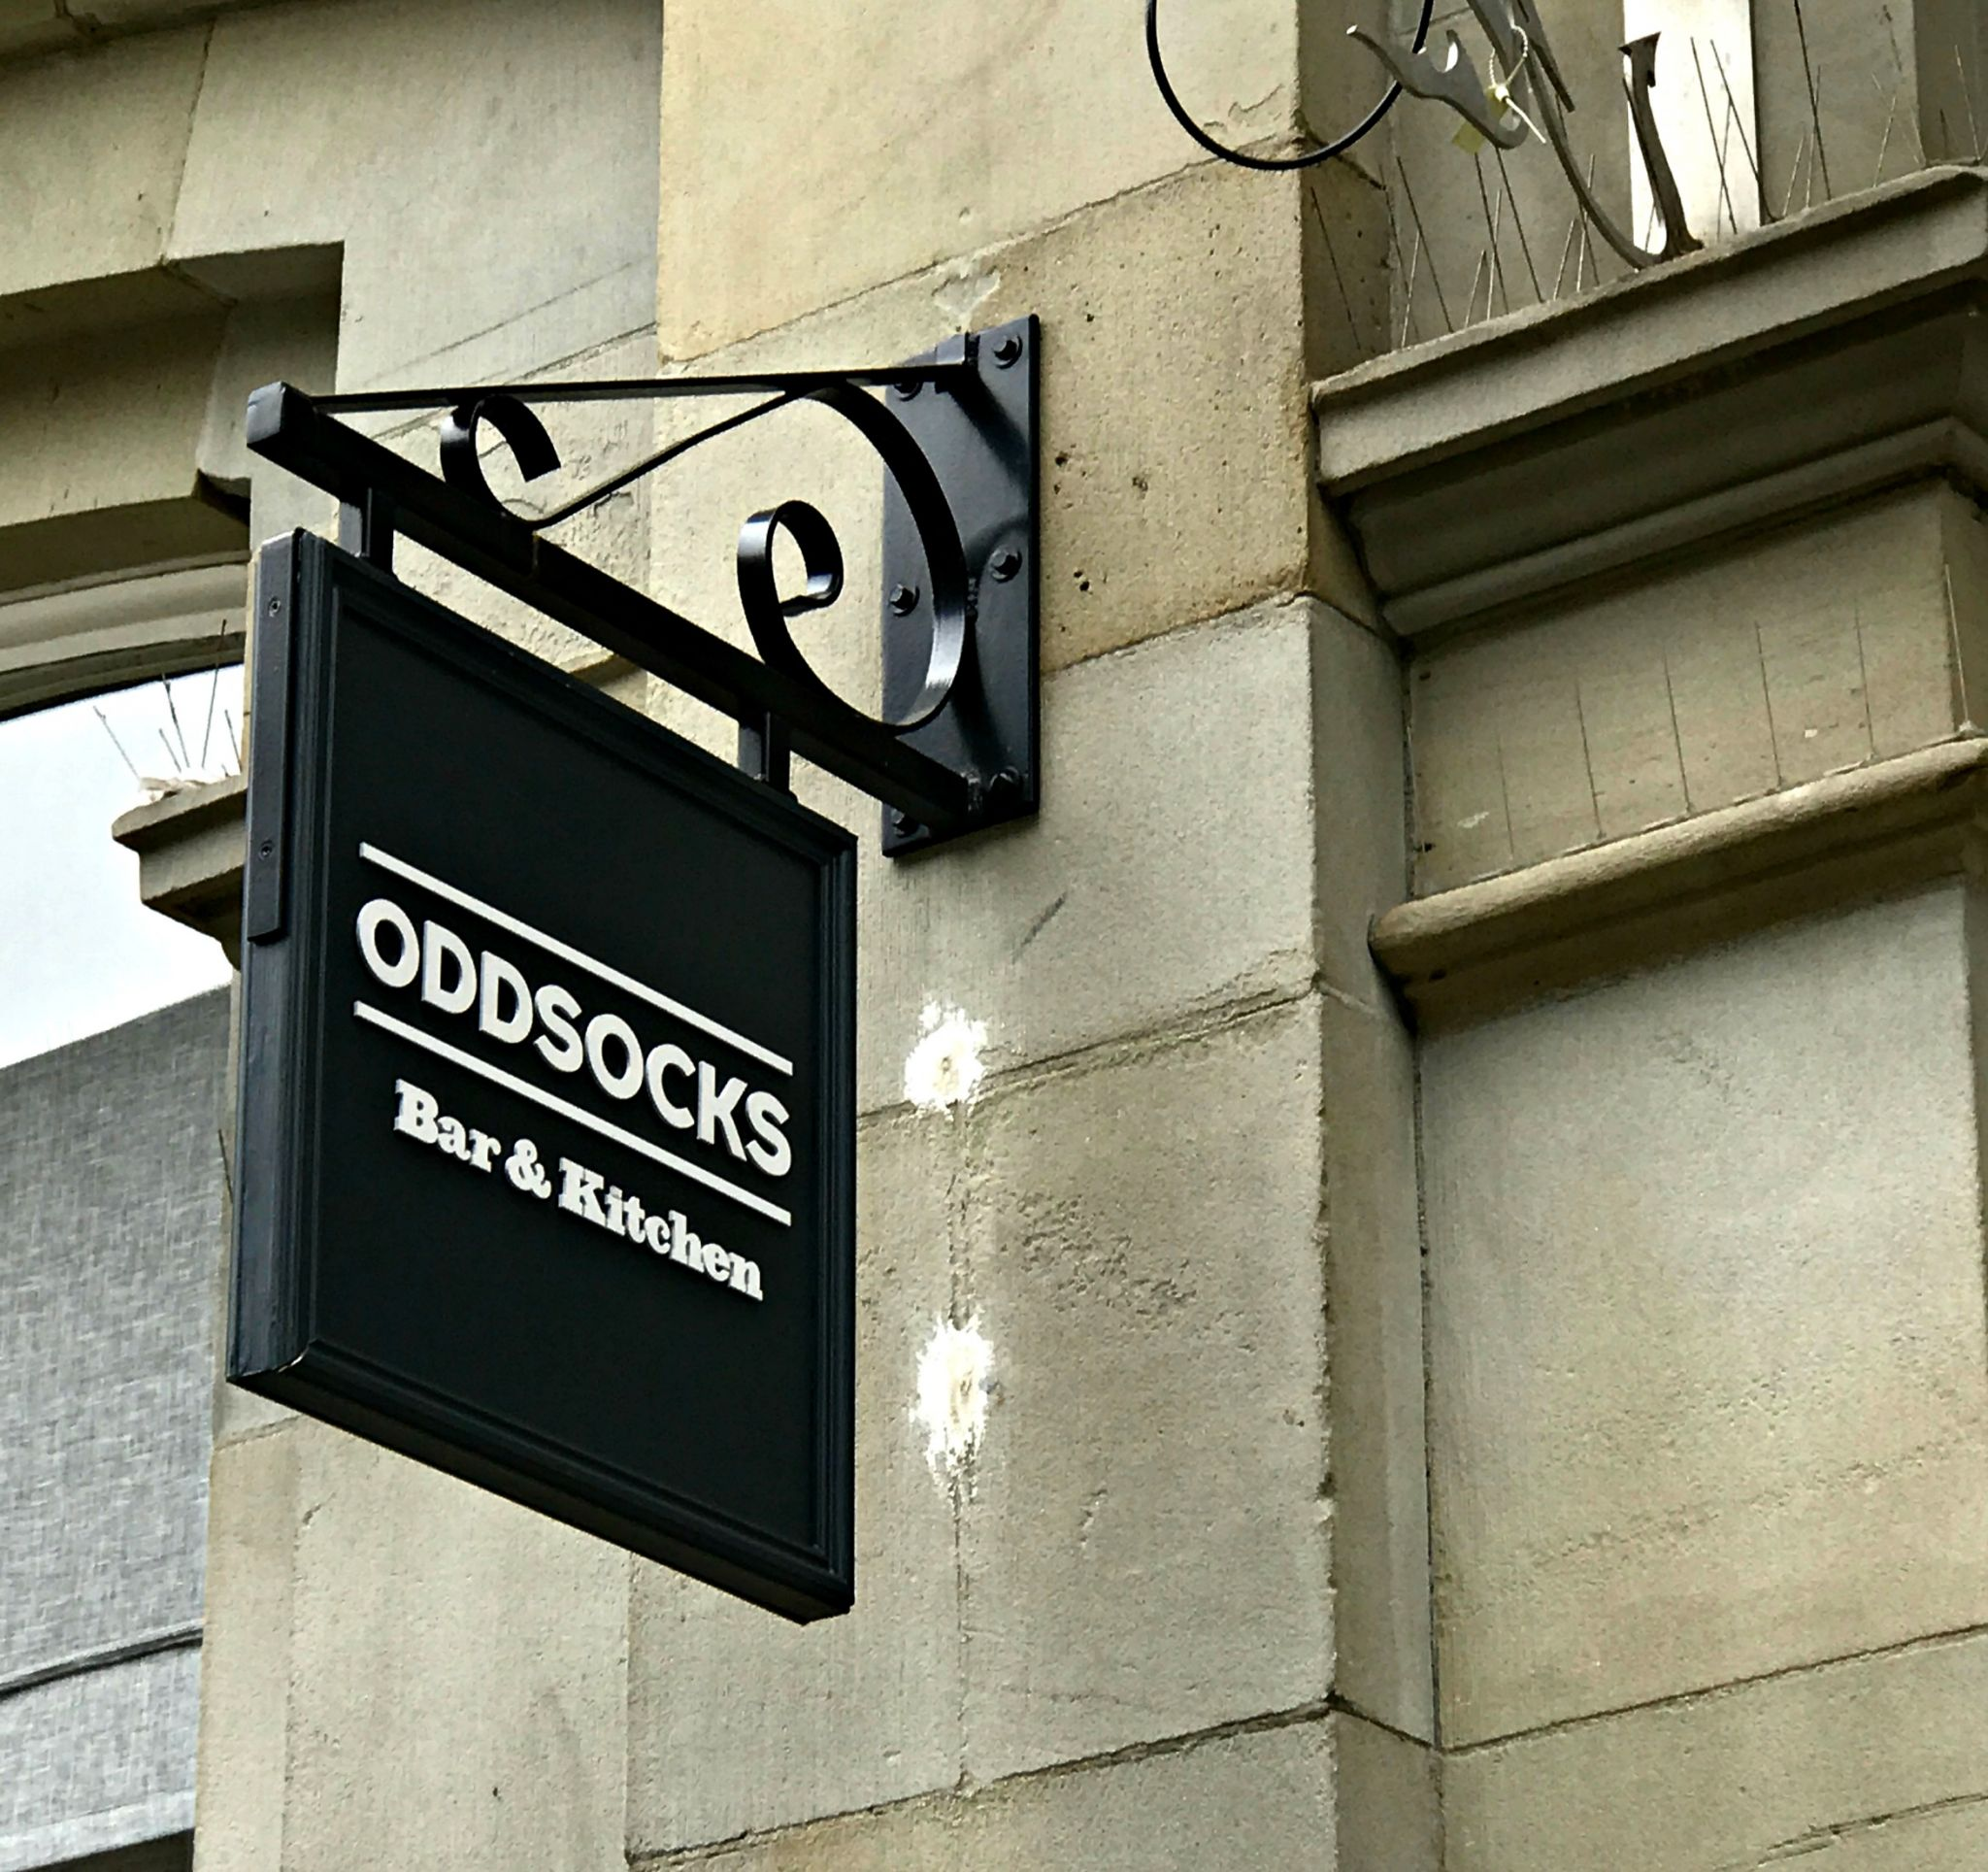 Oddsocks Bar & Kitchen Cardiff signage